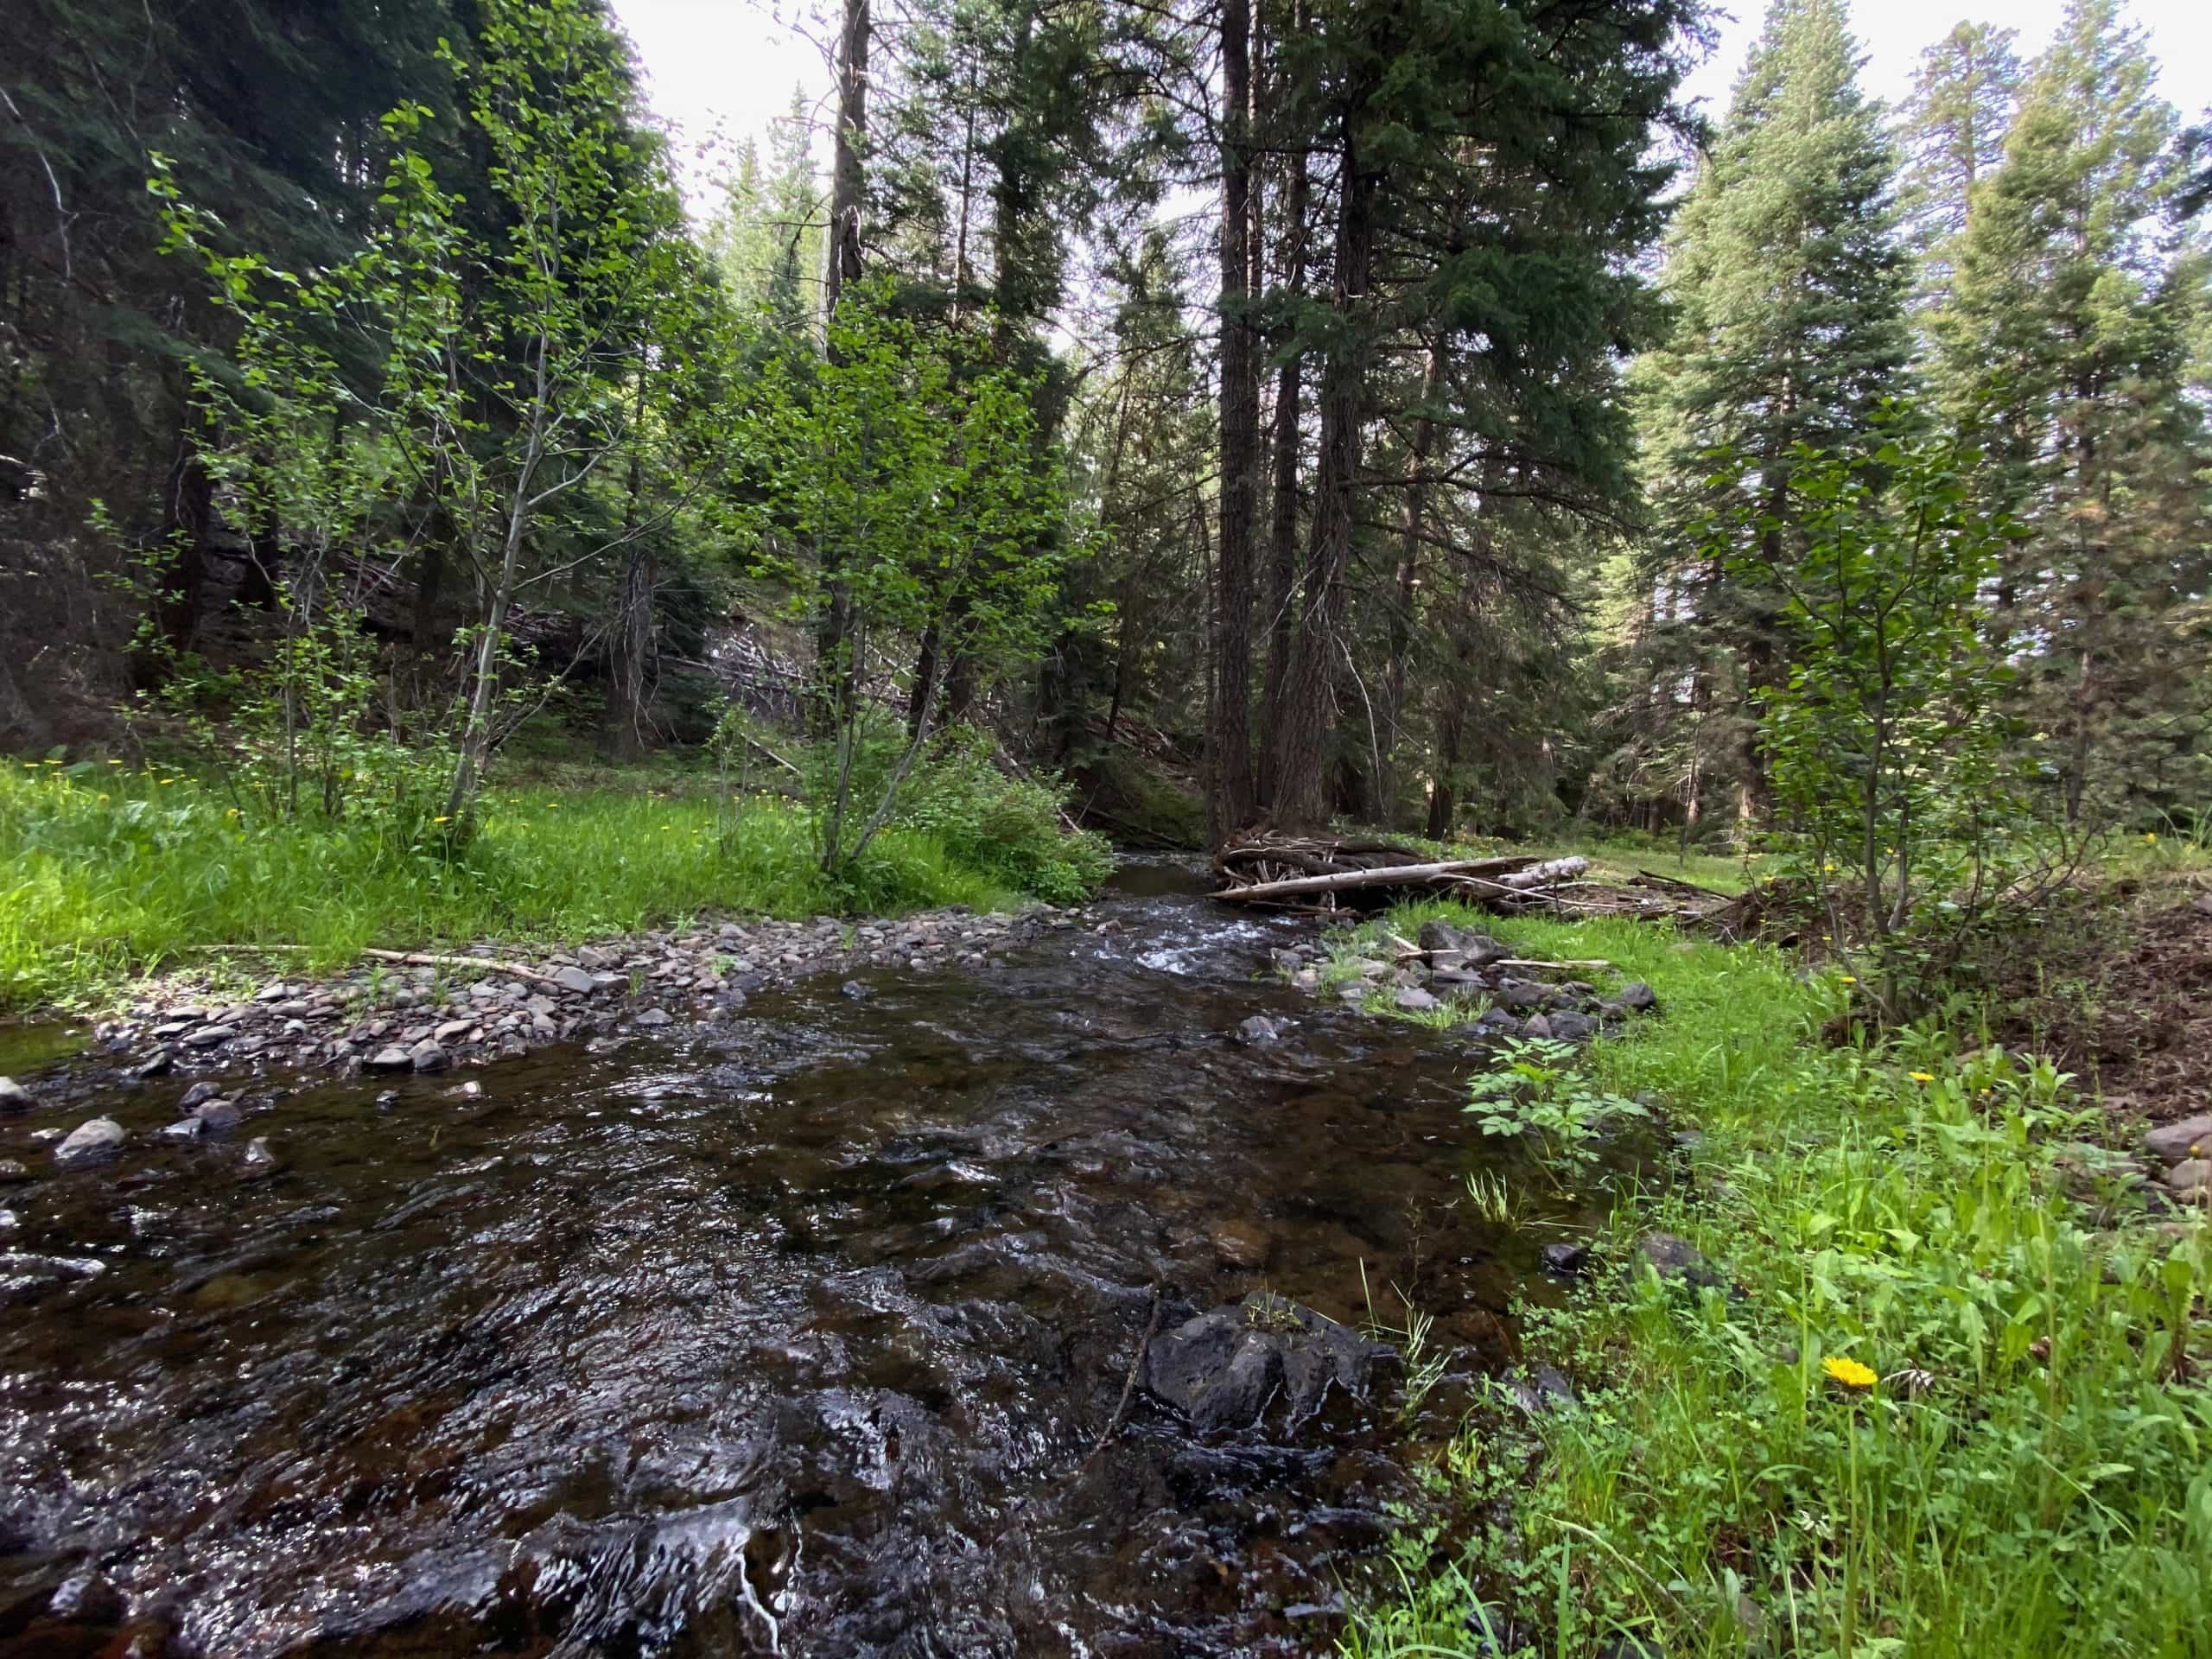 Wolf creek in the Ochoco National forest near Prineville, OR.